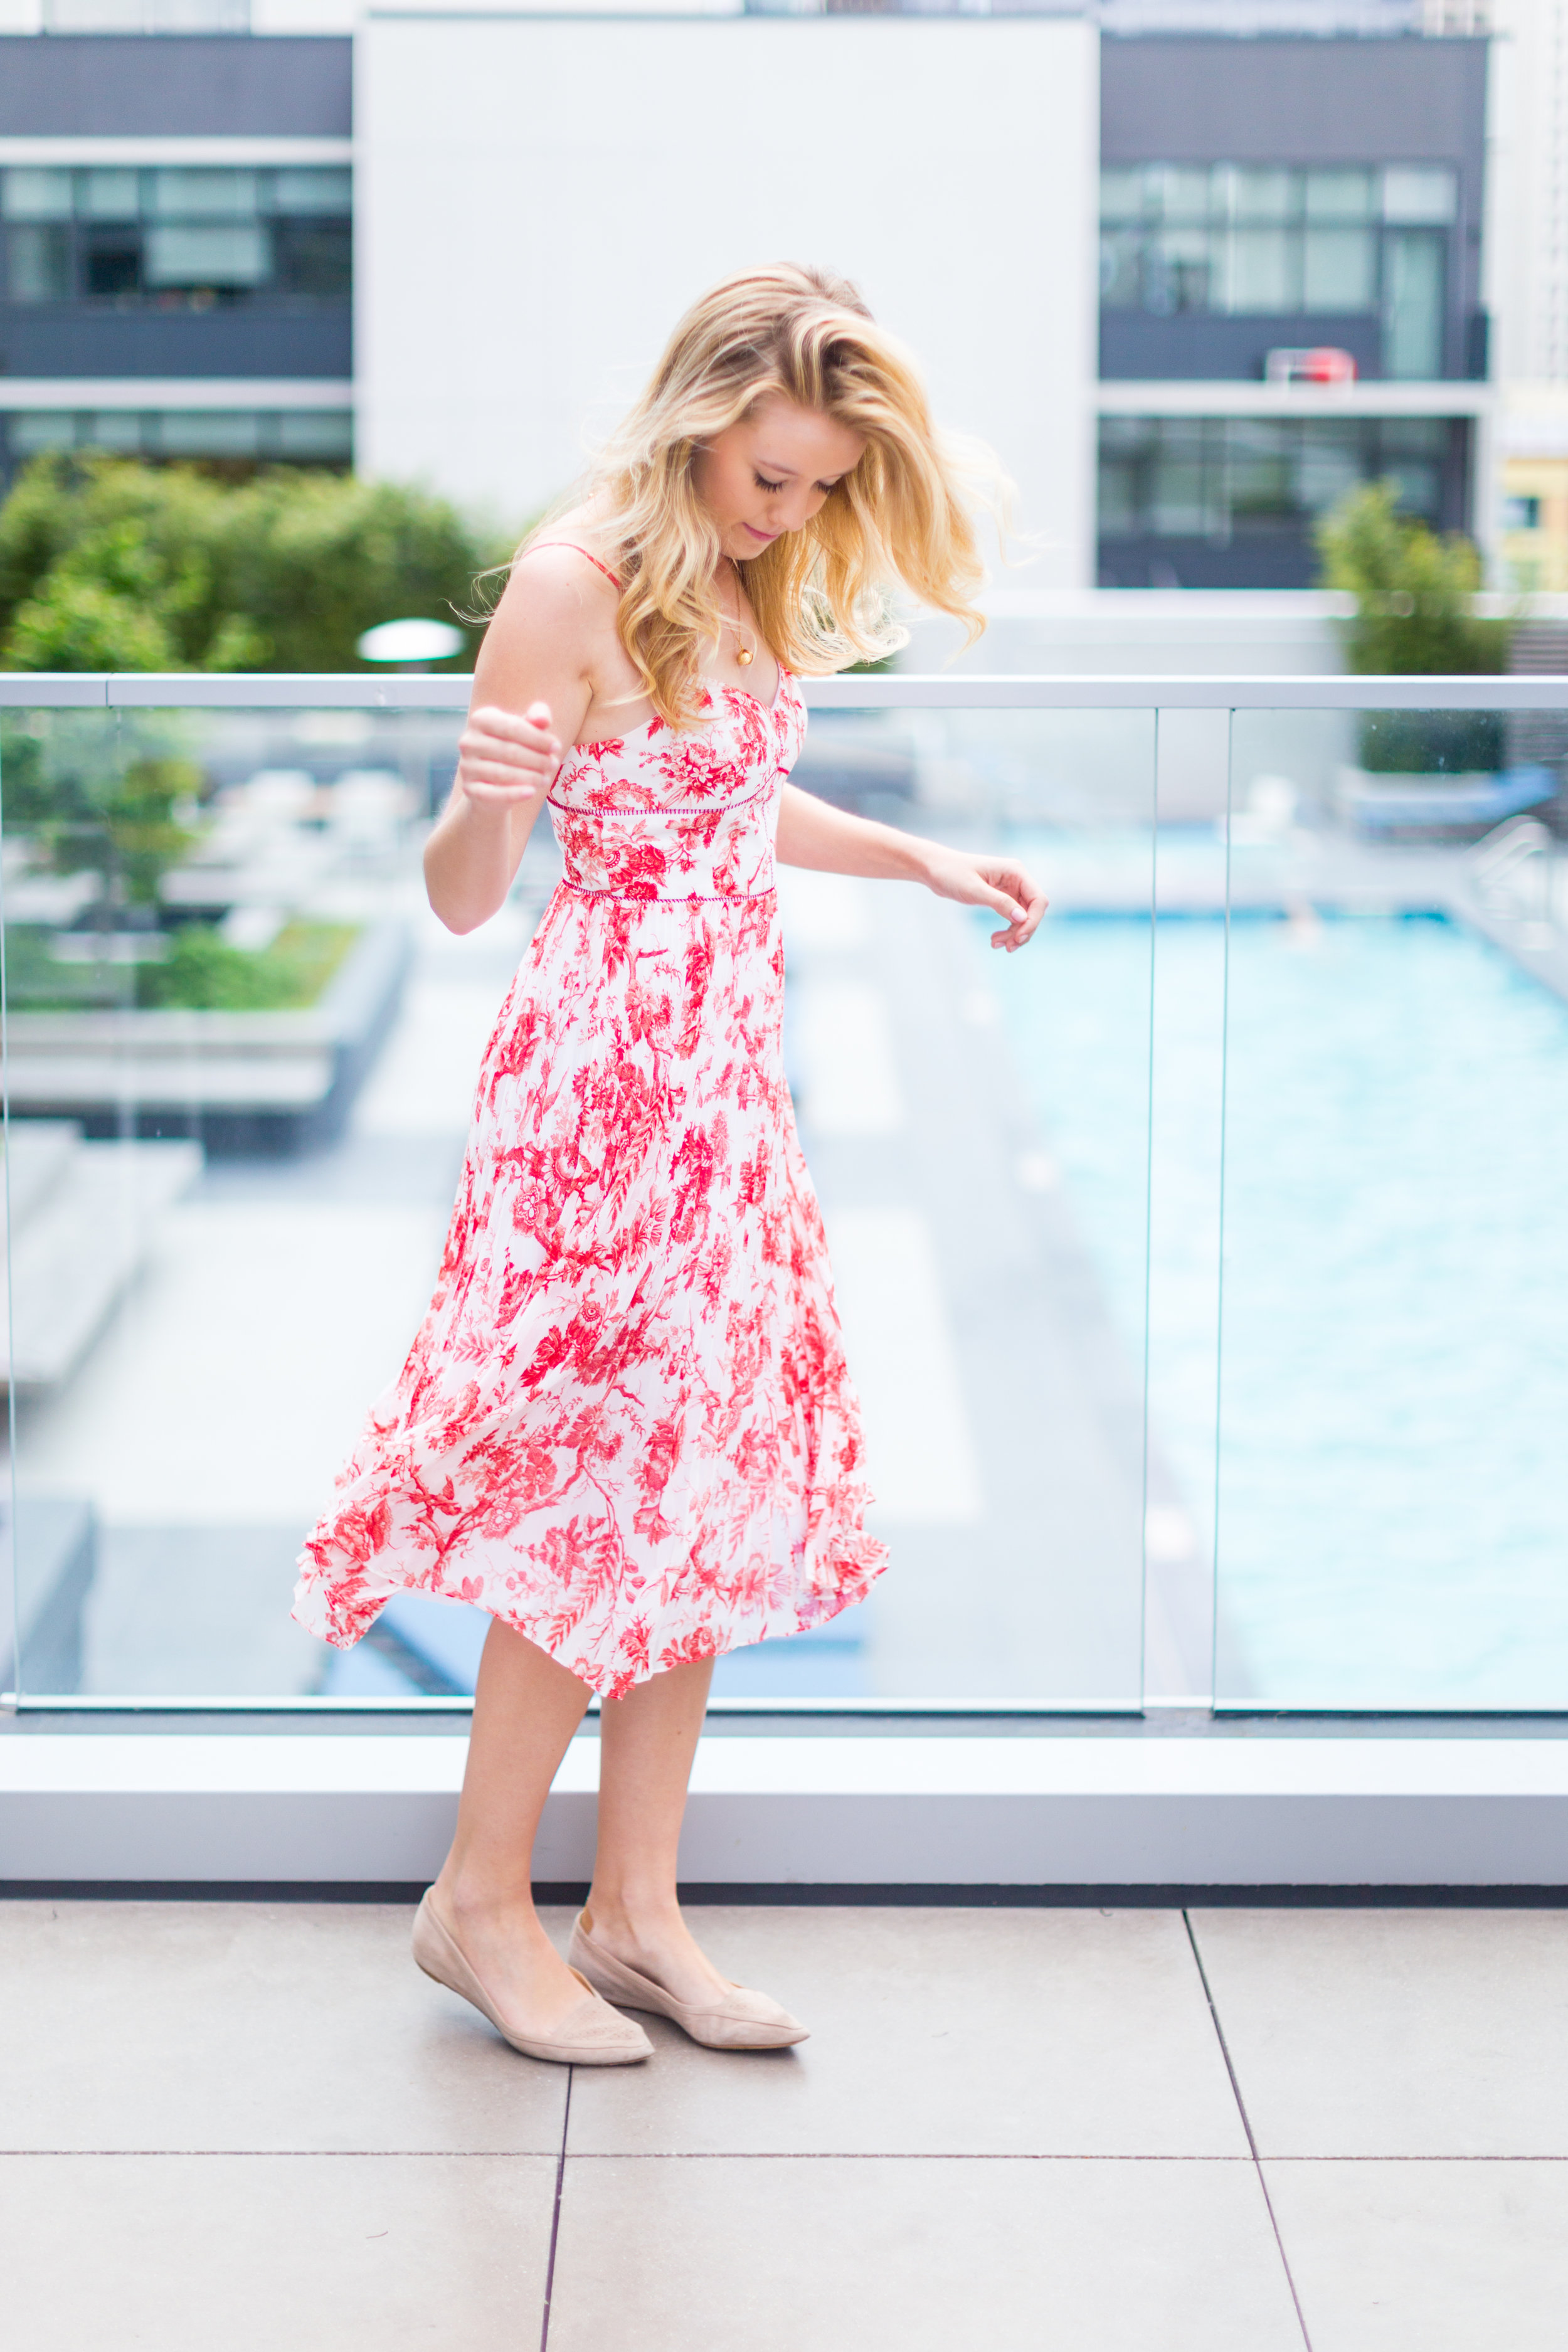 Red Pattern Dress Spring in San Francisco-10.jpg